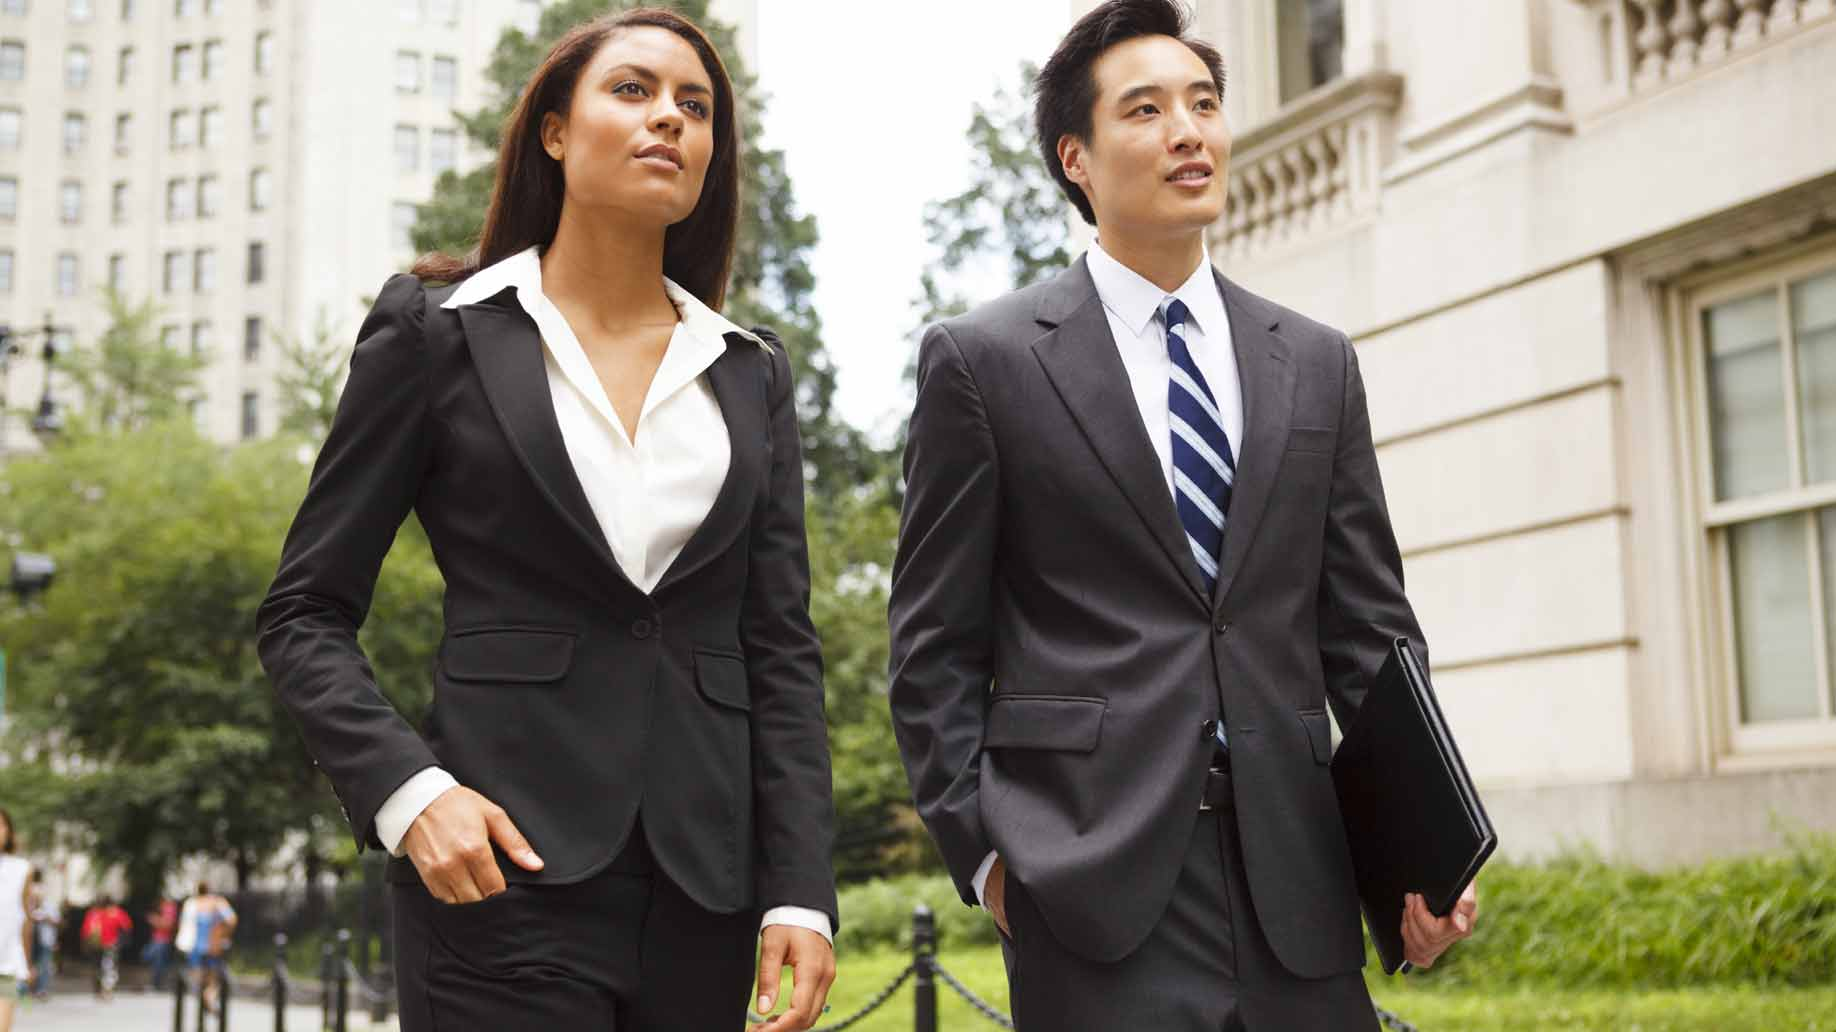 a man and a woman in professional business attire